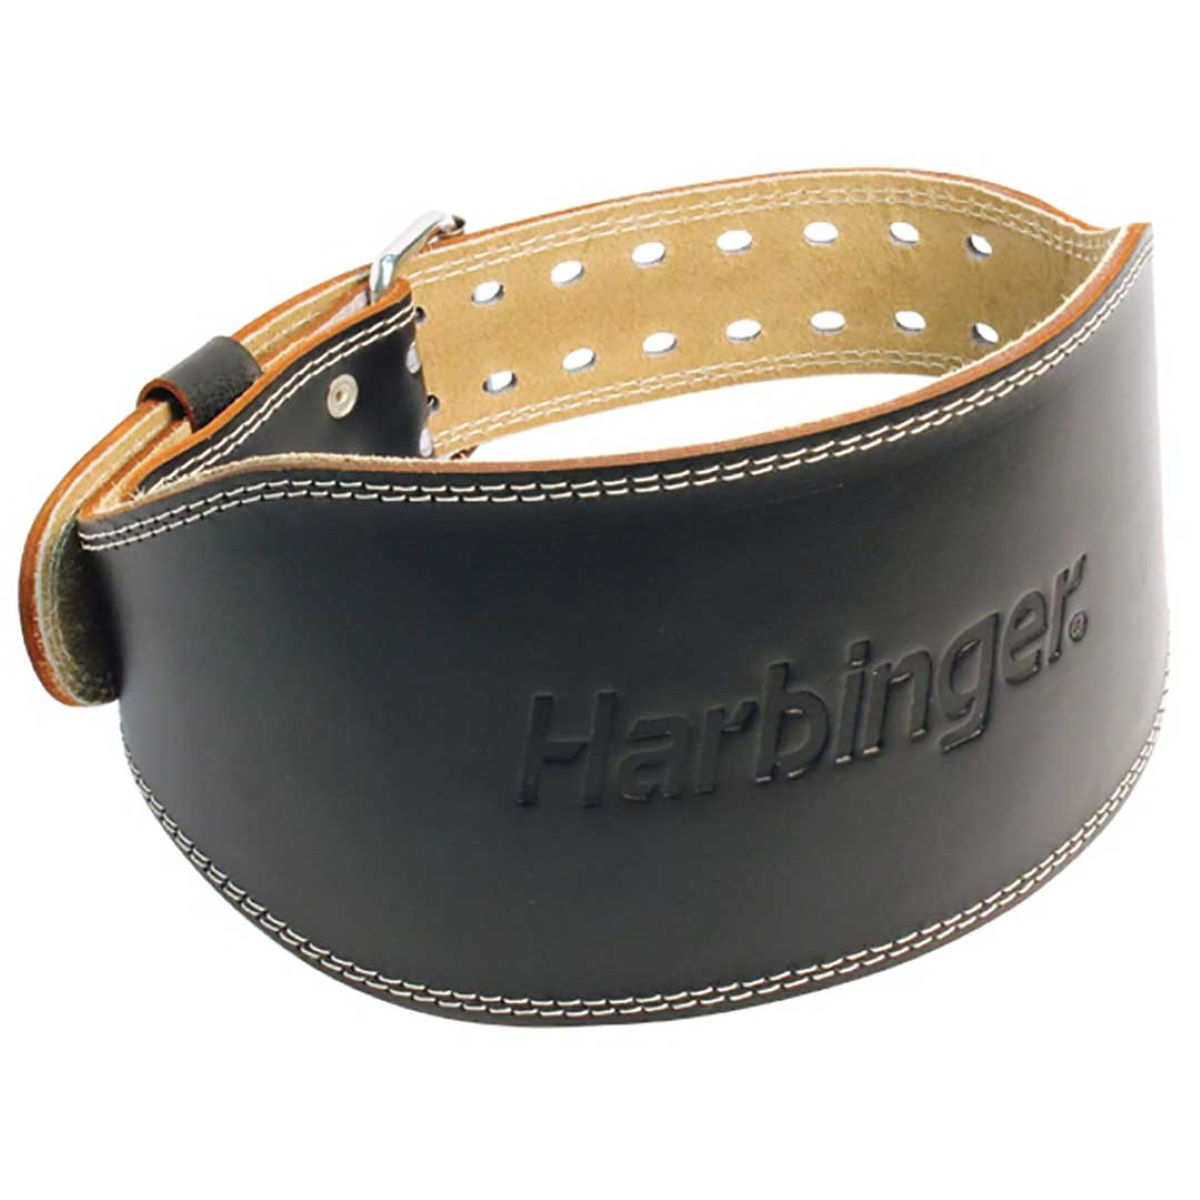 "Harbinger 6"" Padded Leather Belt - Cinturones de musculación"